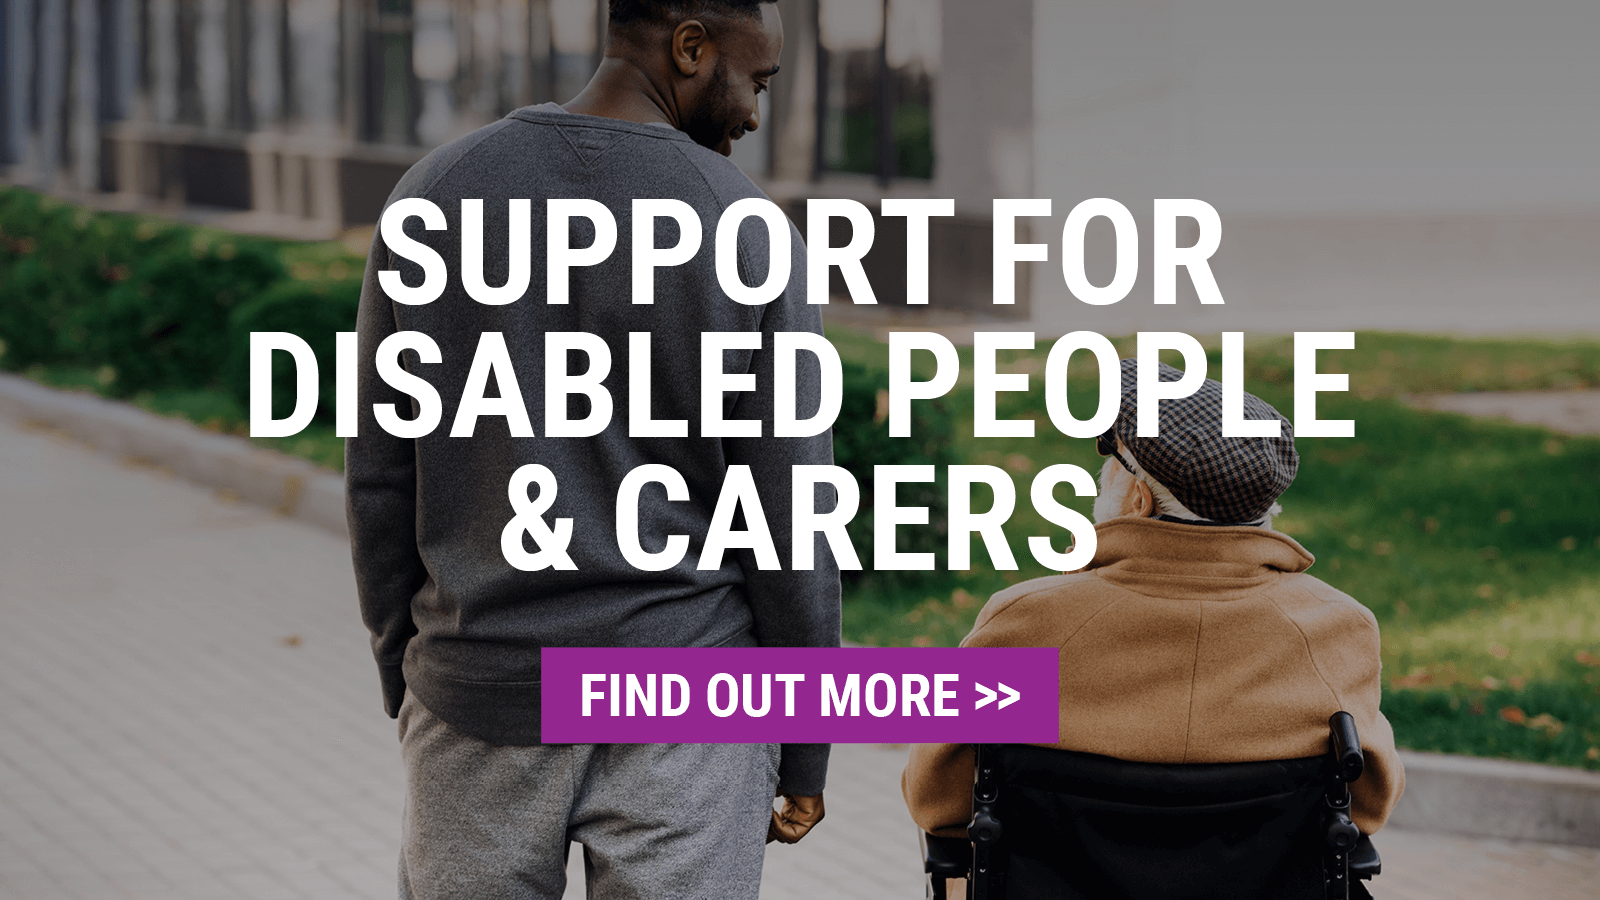 Support for disabled people and carers | Find out more